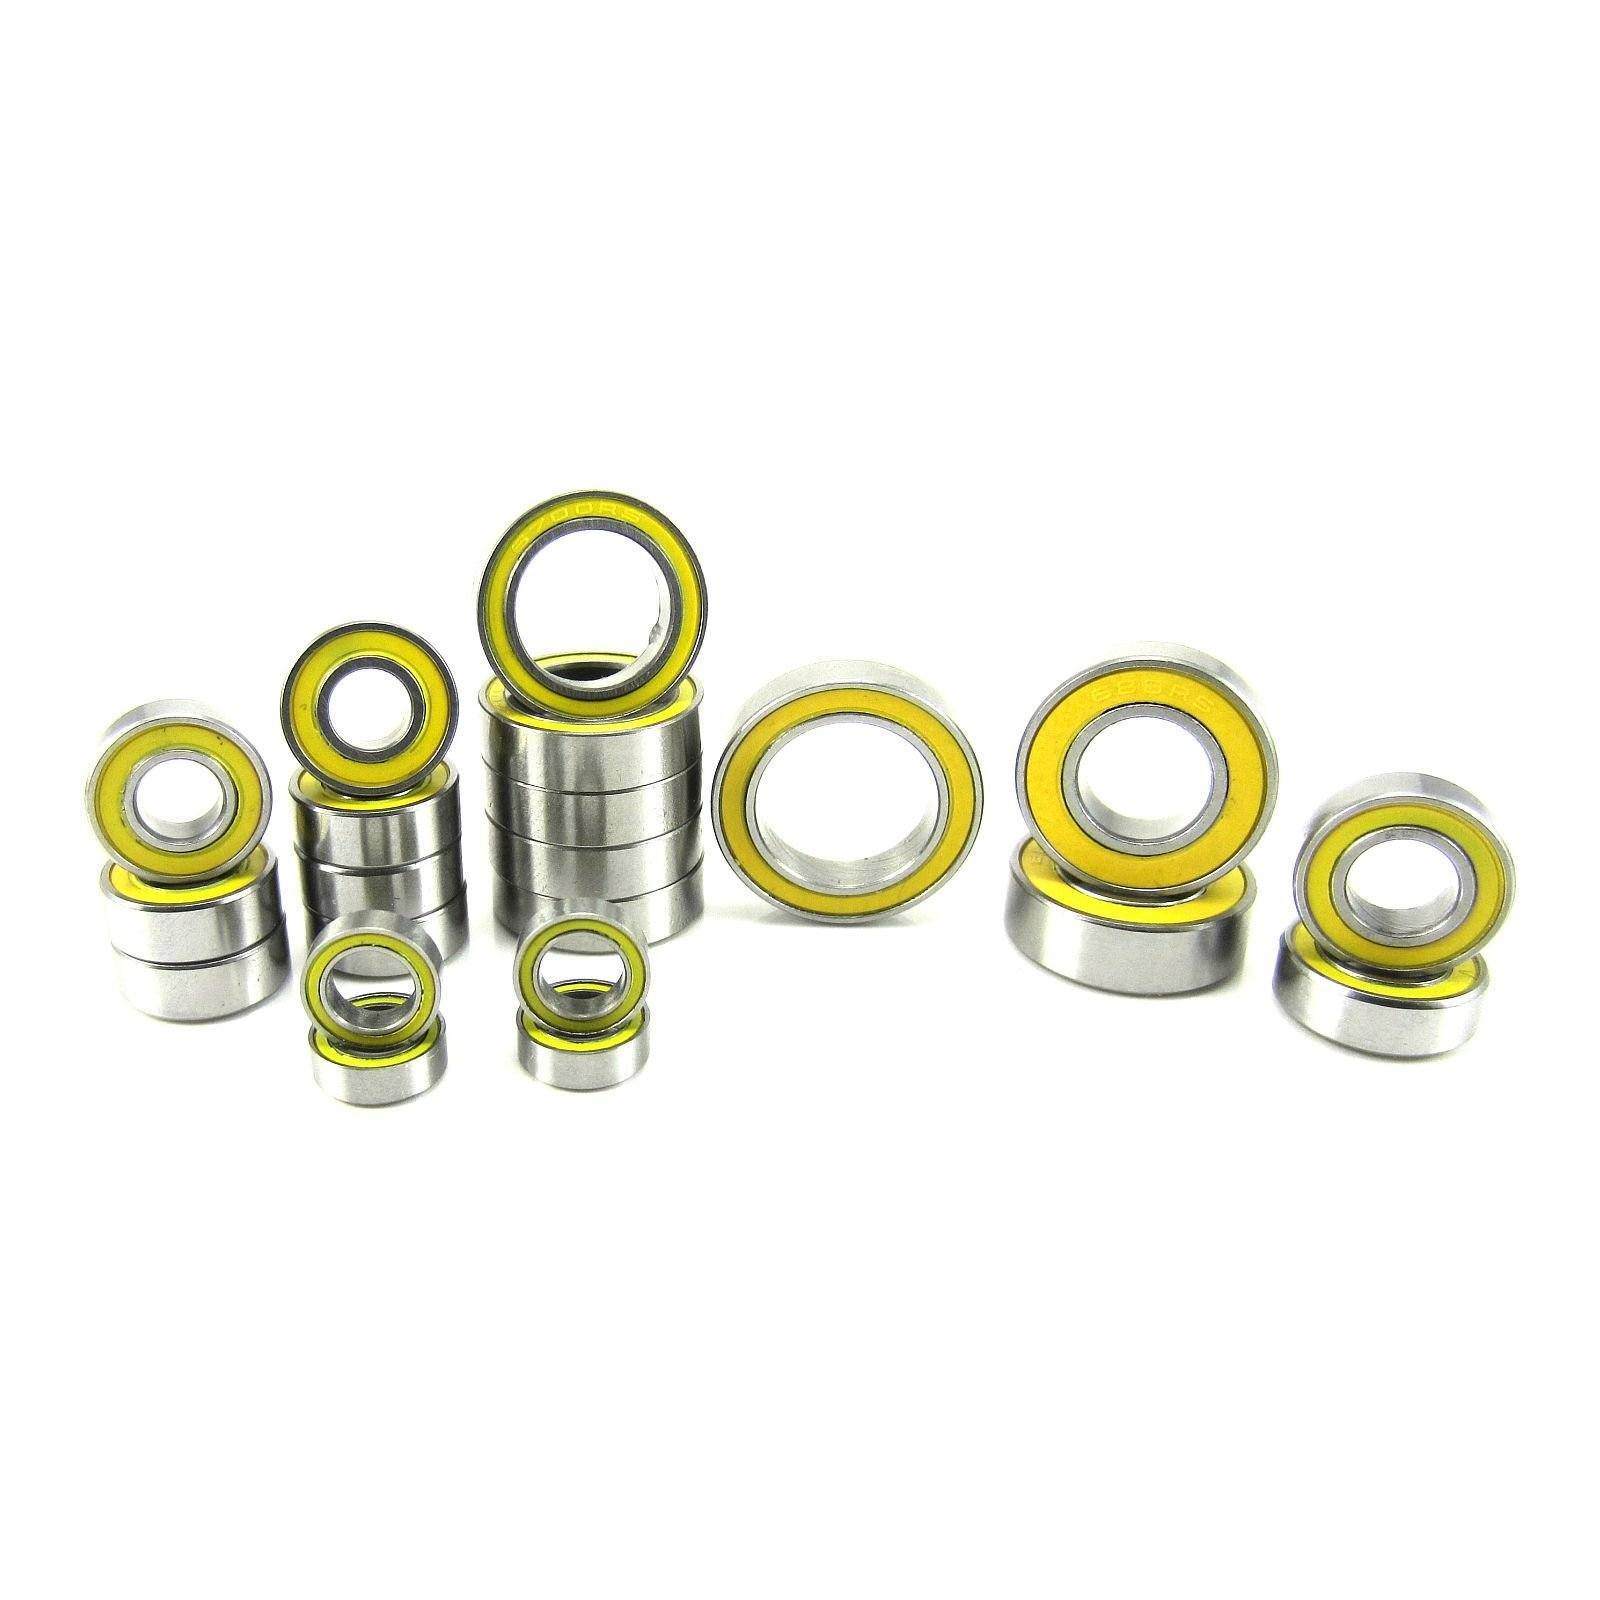 TRB RC Precision Ball Bearing Kit Yellow (21) Traxxas Rustler 4x4 VXL - trb-rc-bearings